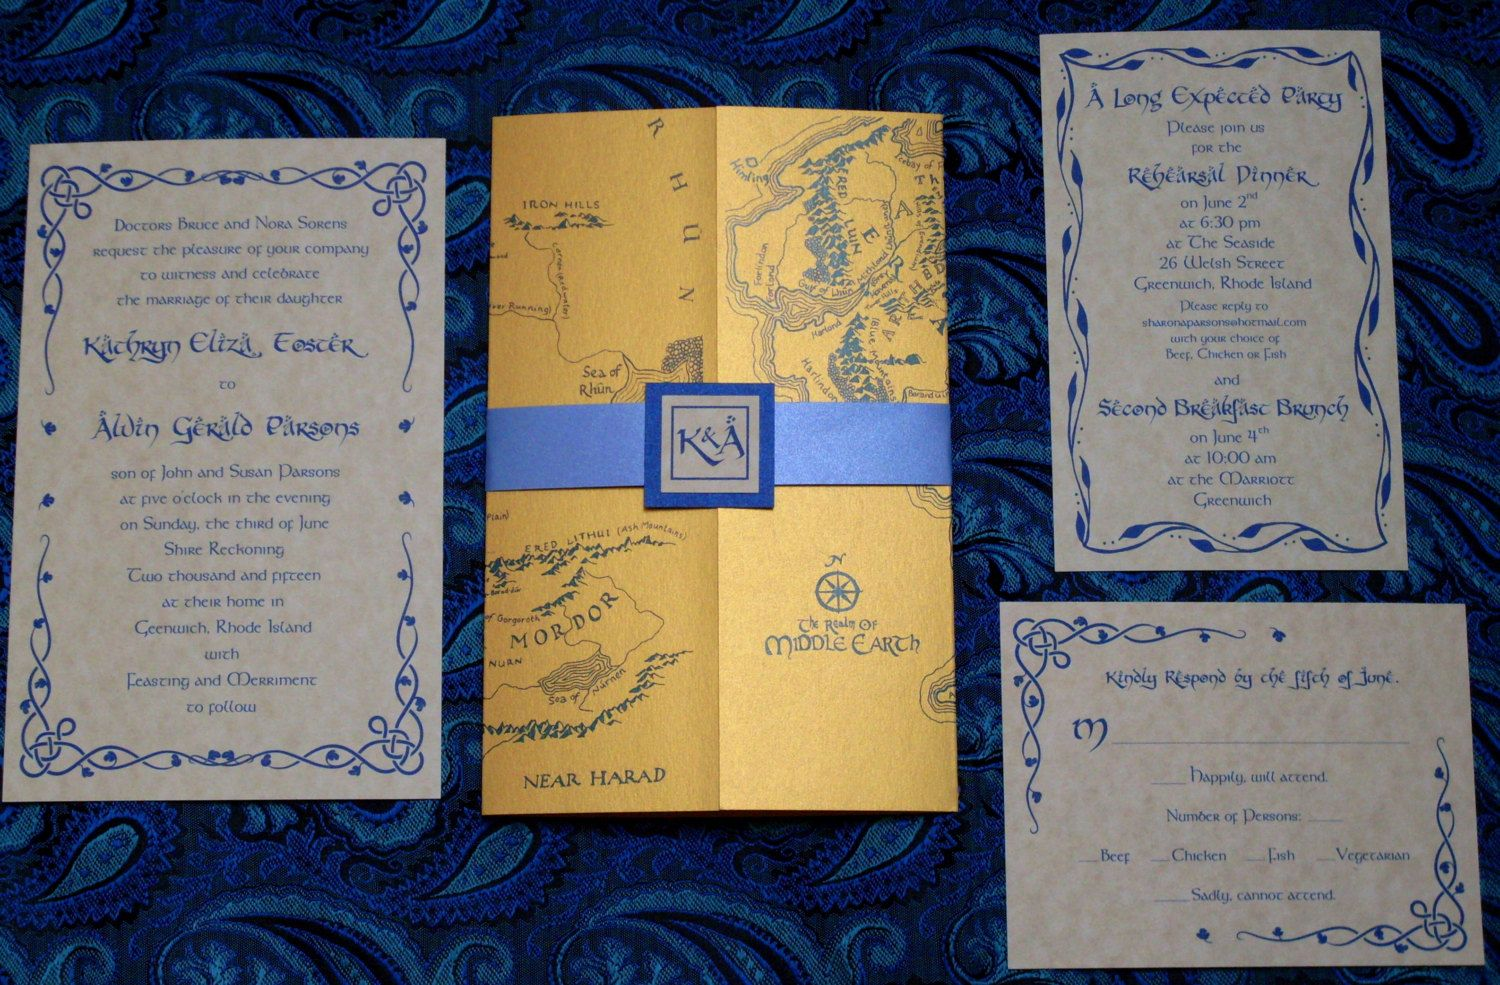 Lotr Middle Earth Map Wedding Invitation In Gold Blue Https Www Etsy Listing 276883024 65 Thank You Cards Ref